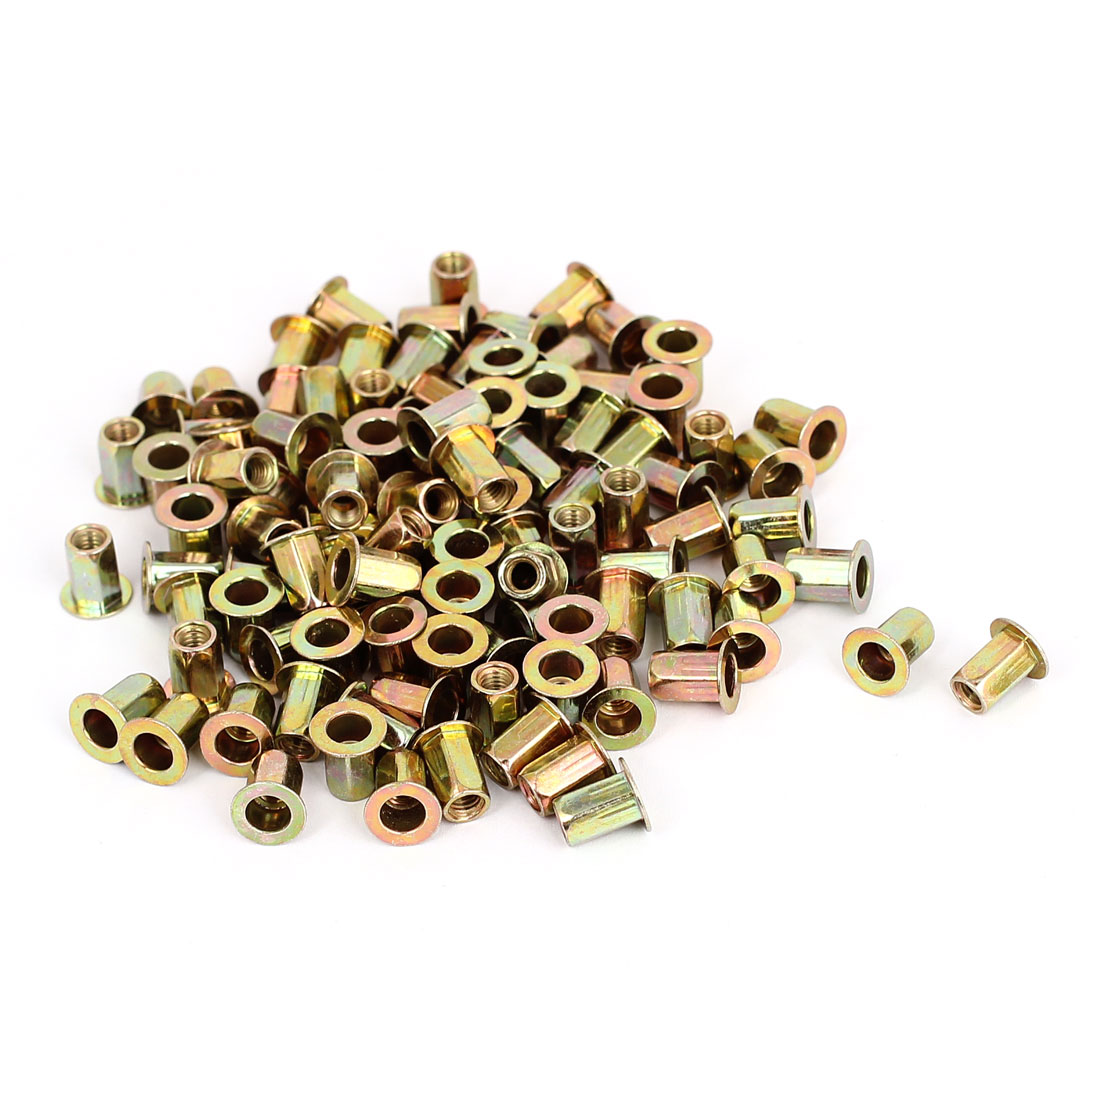 100pcs M4 Carbon Steel Hex Body Countersunk Head Blind Rivet Nut Insert Nutserts